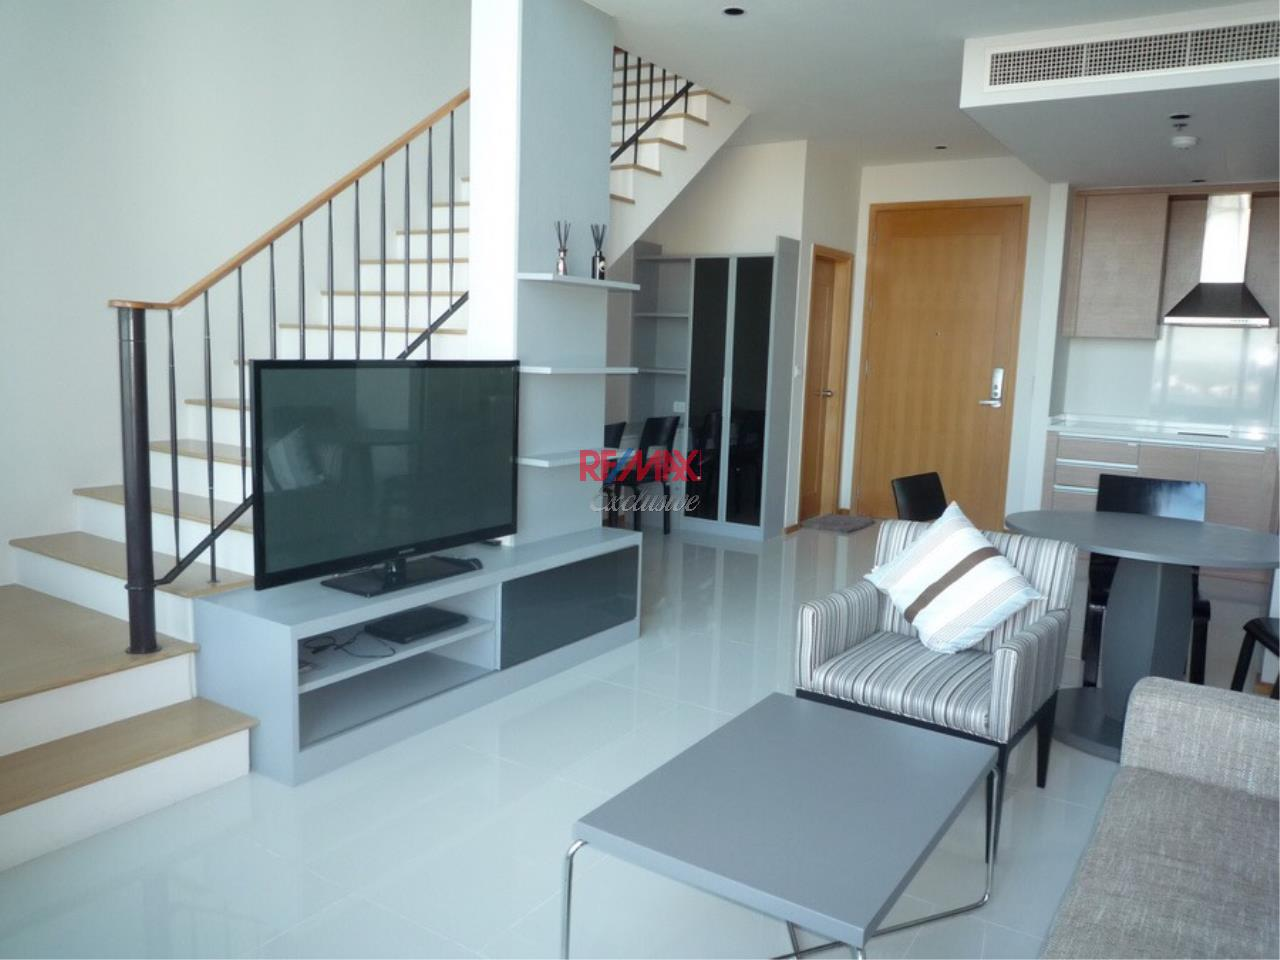 RE/MAX Exclusive Agency's Emporio Place 1 Bed Duplex 73 Sqm., For Rent 55,000 THB!!! 1